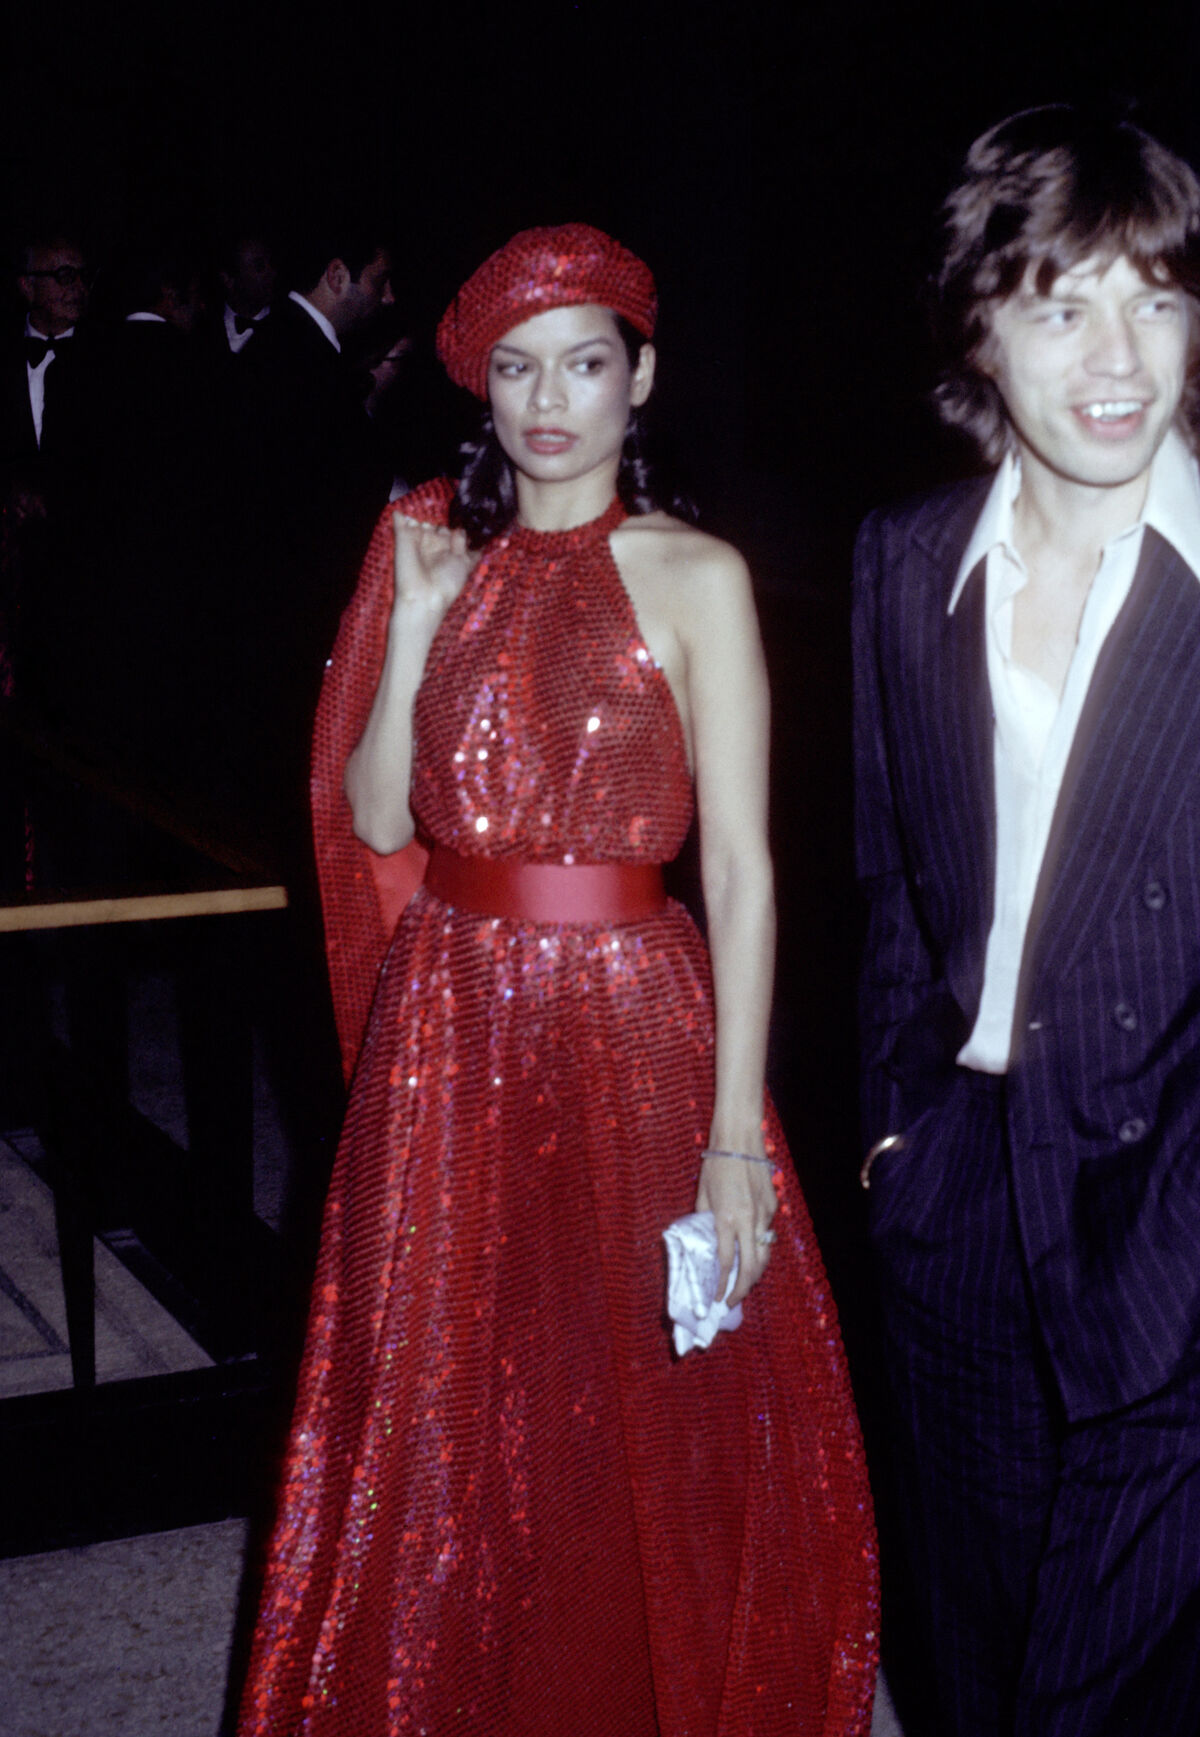 Bianca Jagger and Mick Jagger at the at the Costume Institute Benefit Gala at the Metropolitan Museum of Art, New York, 1974. Photo by Ron Galella/WireImage.